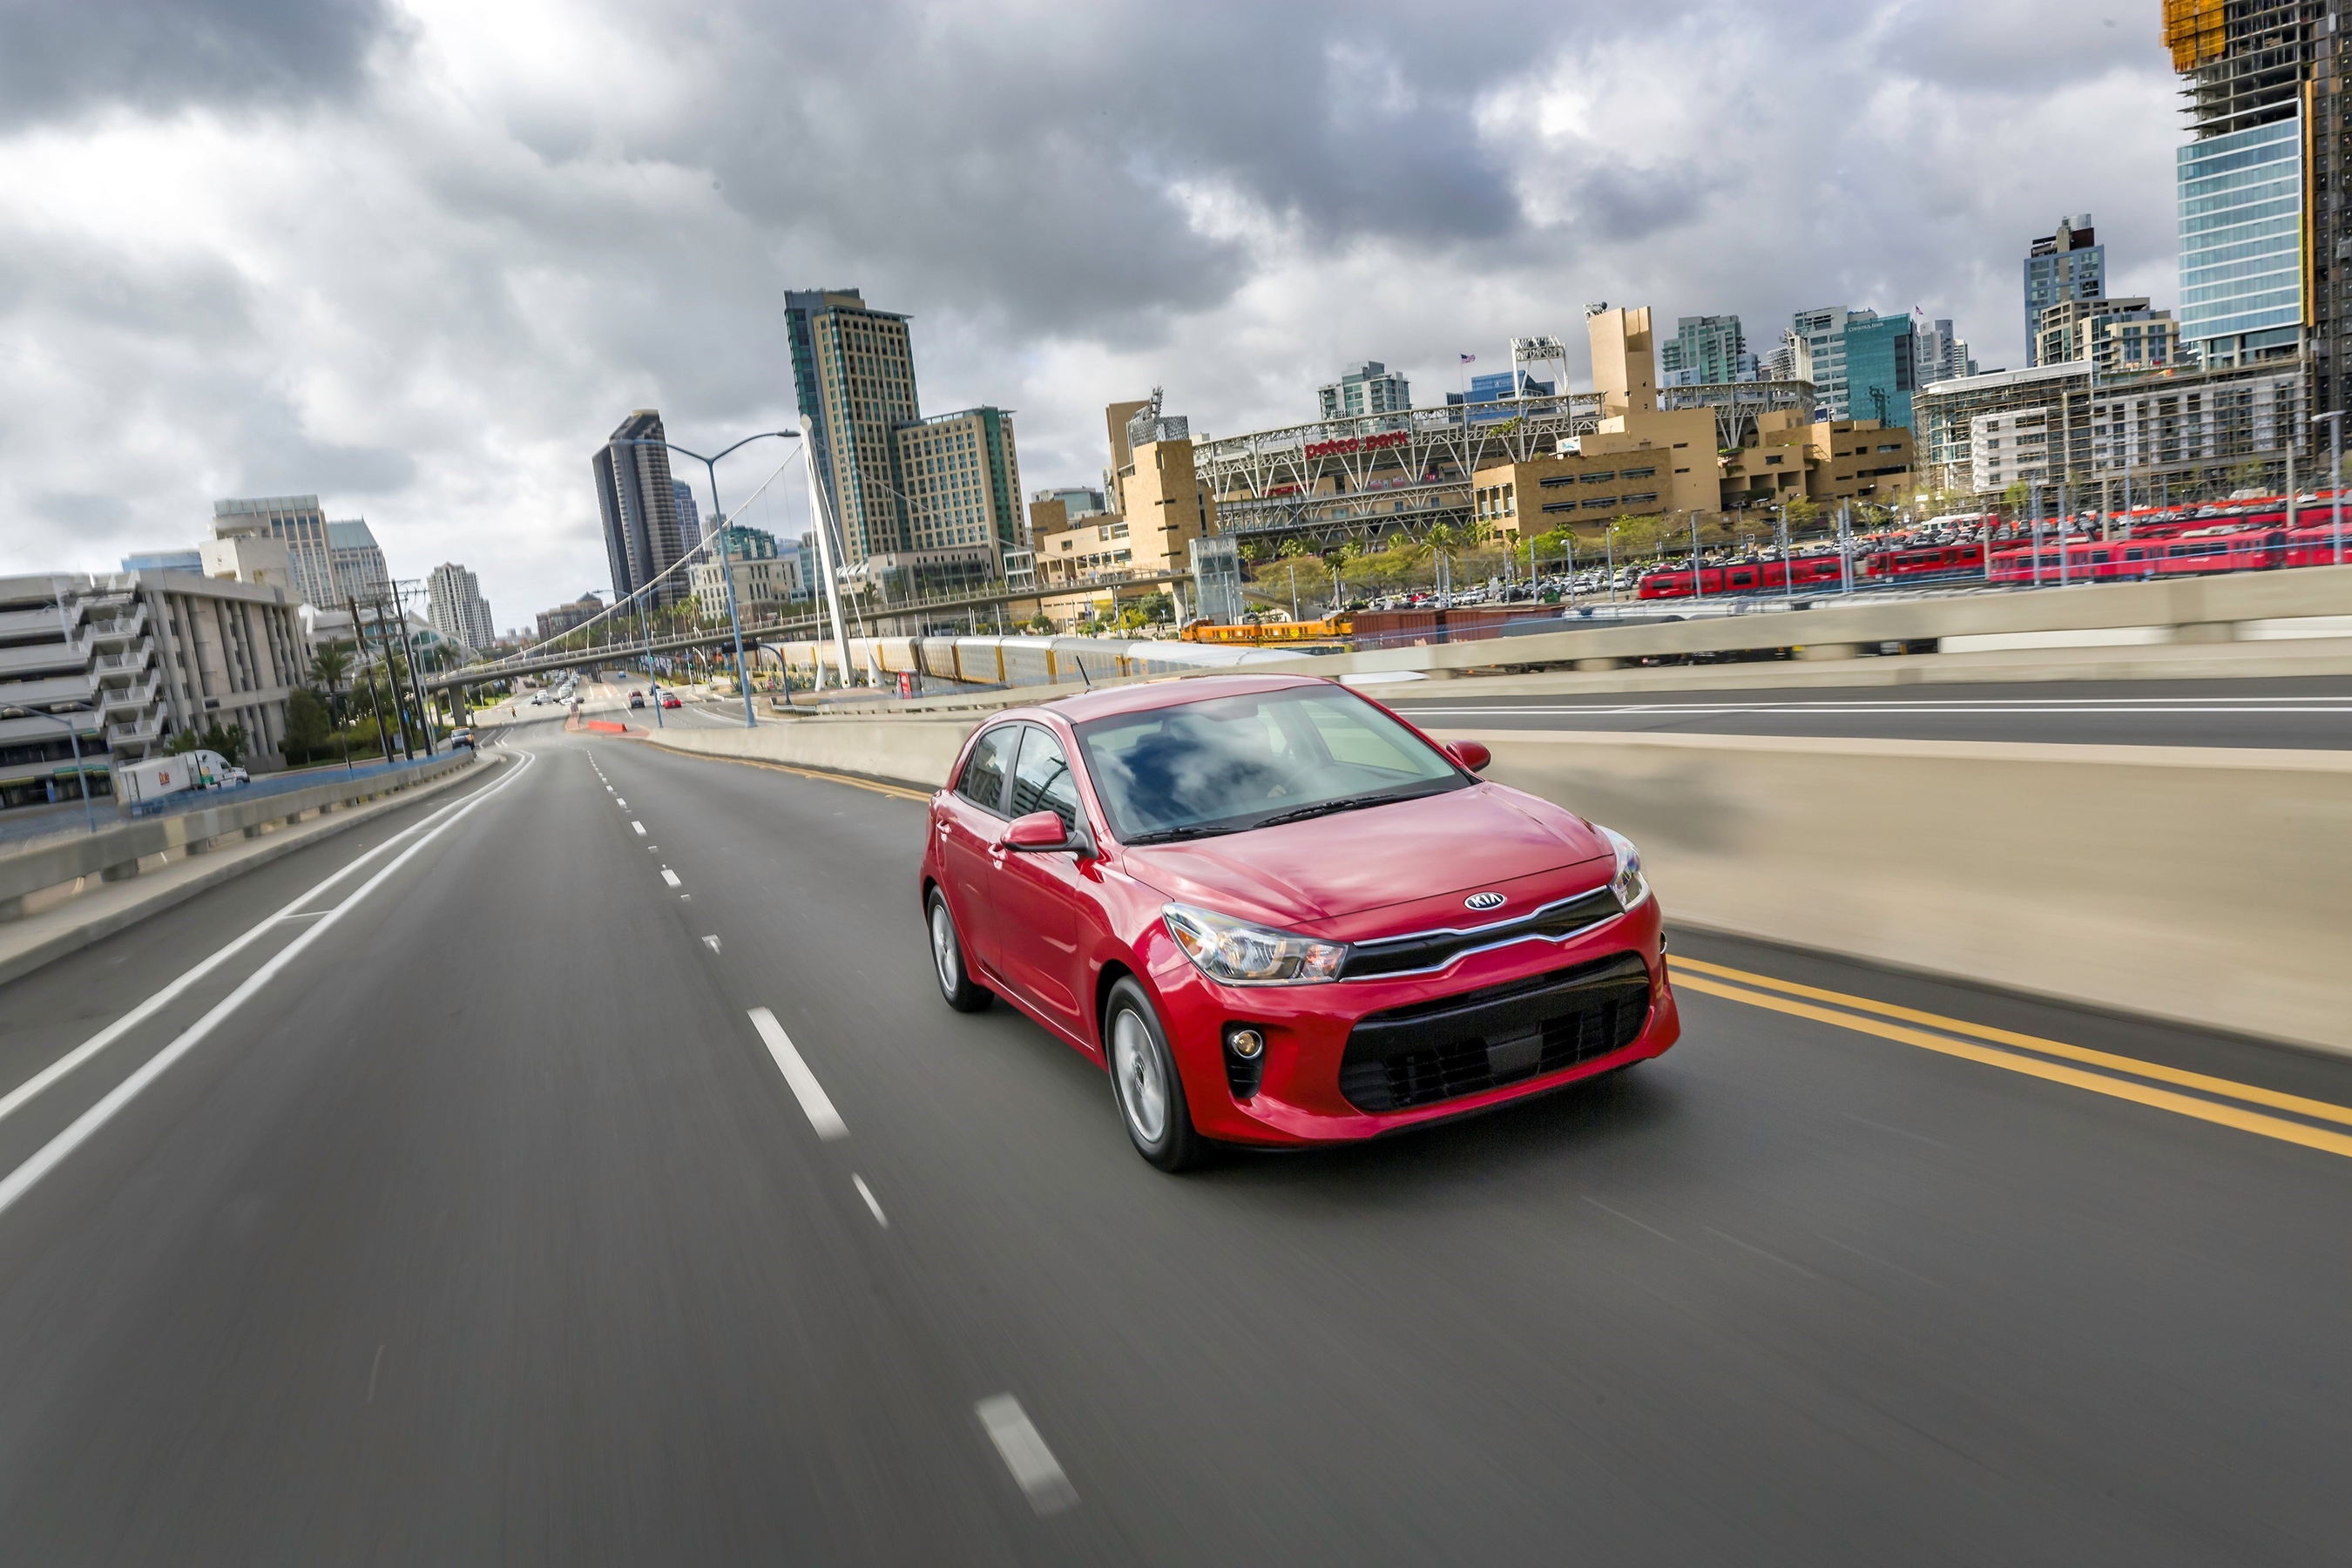 Fourth-generation Kia Rio subcompacts tout sporty design, greater comfort, more room and refined ride.